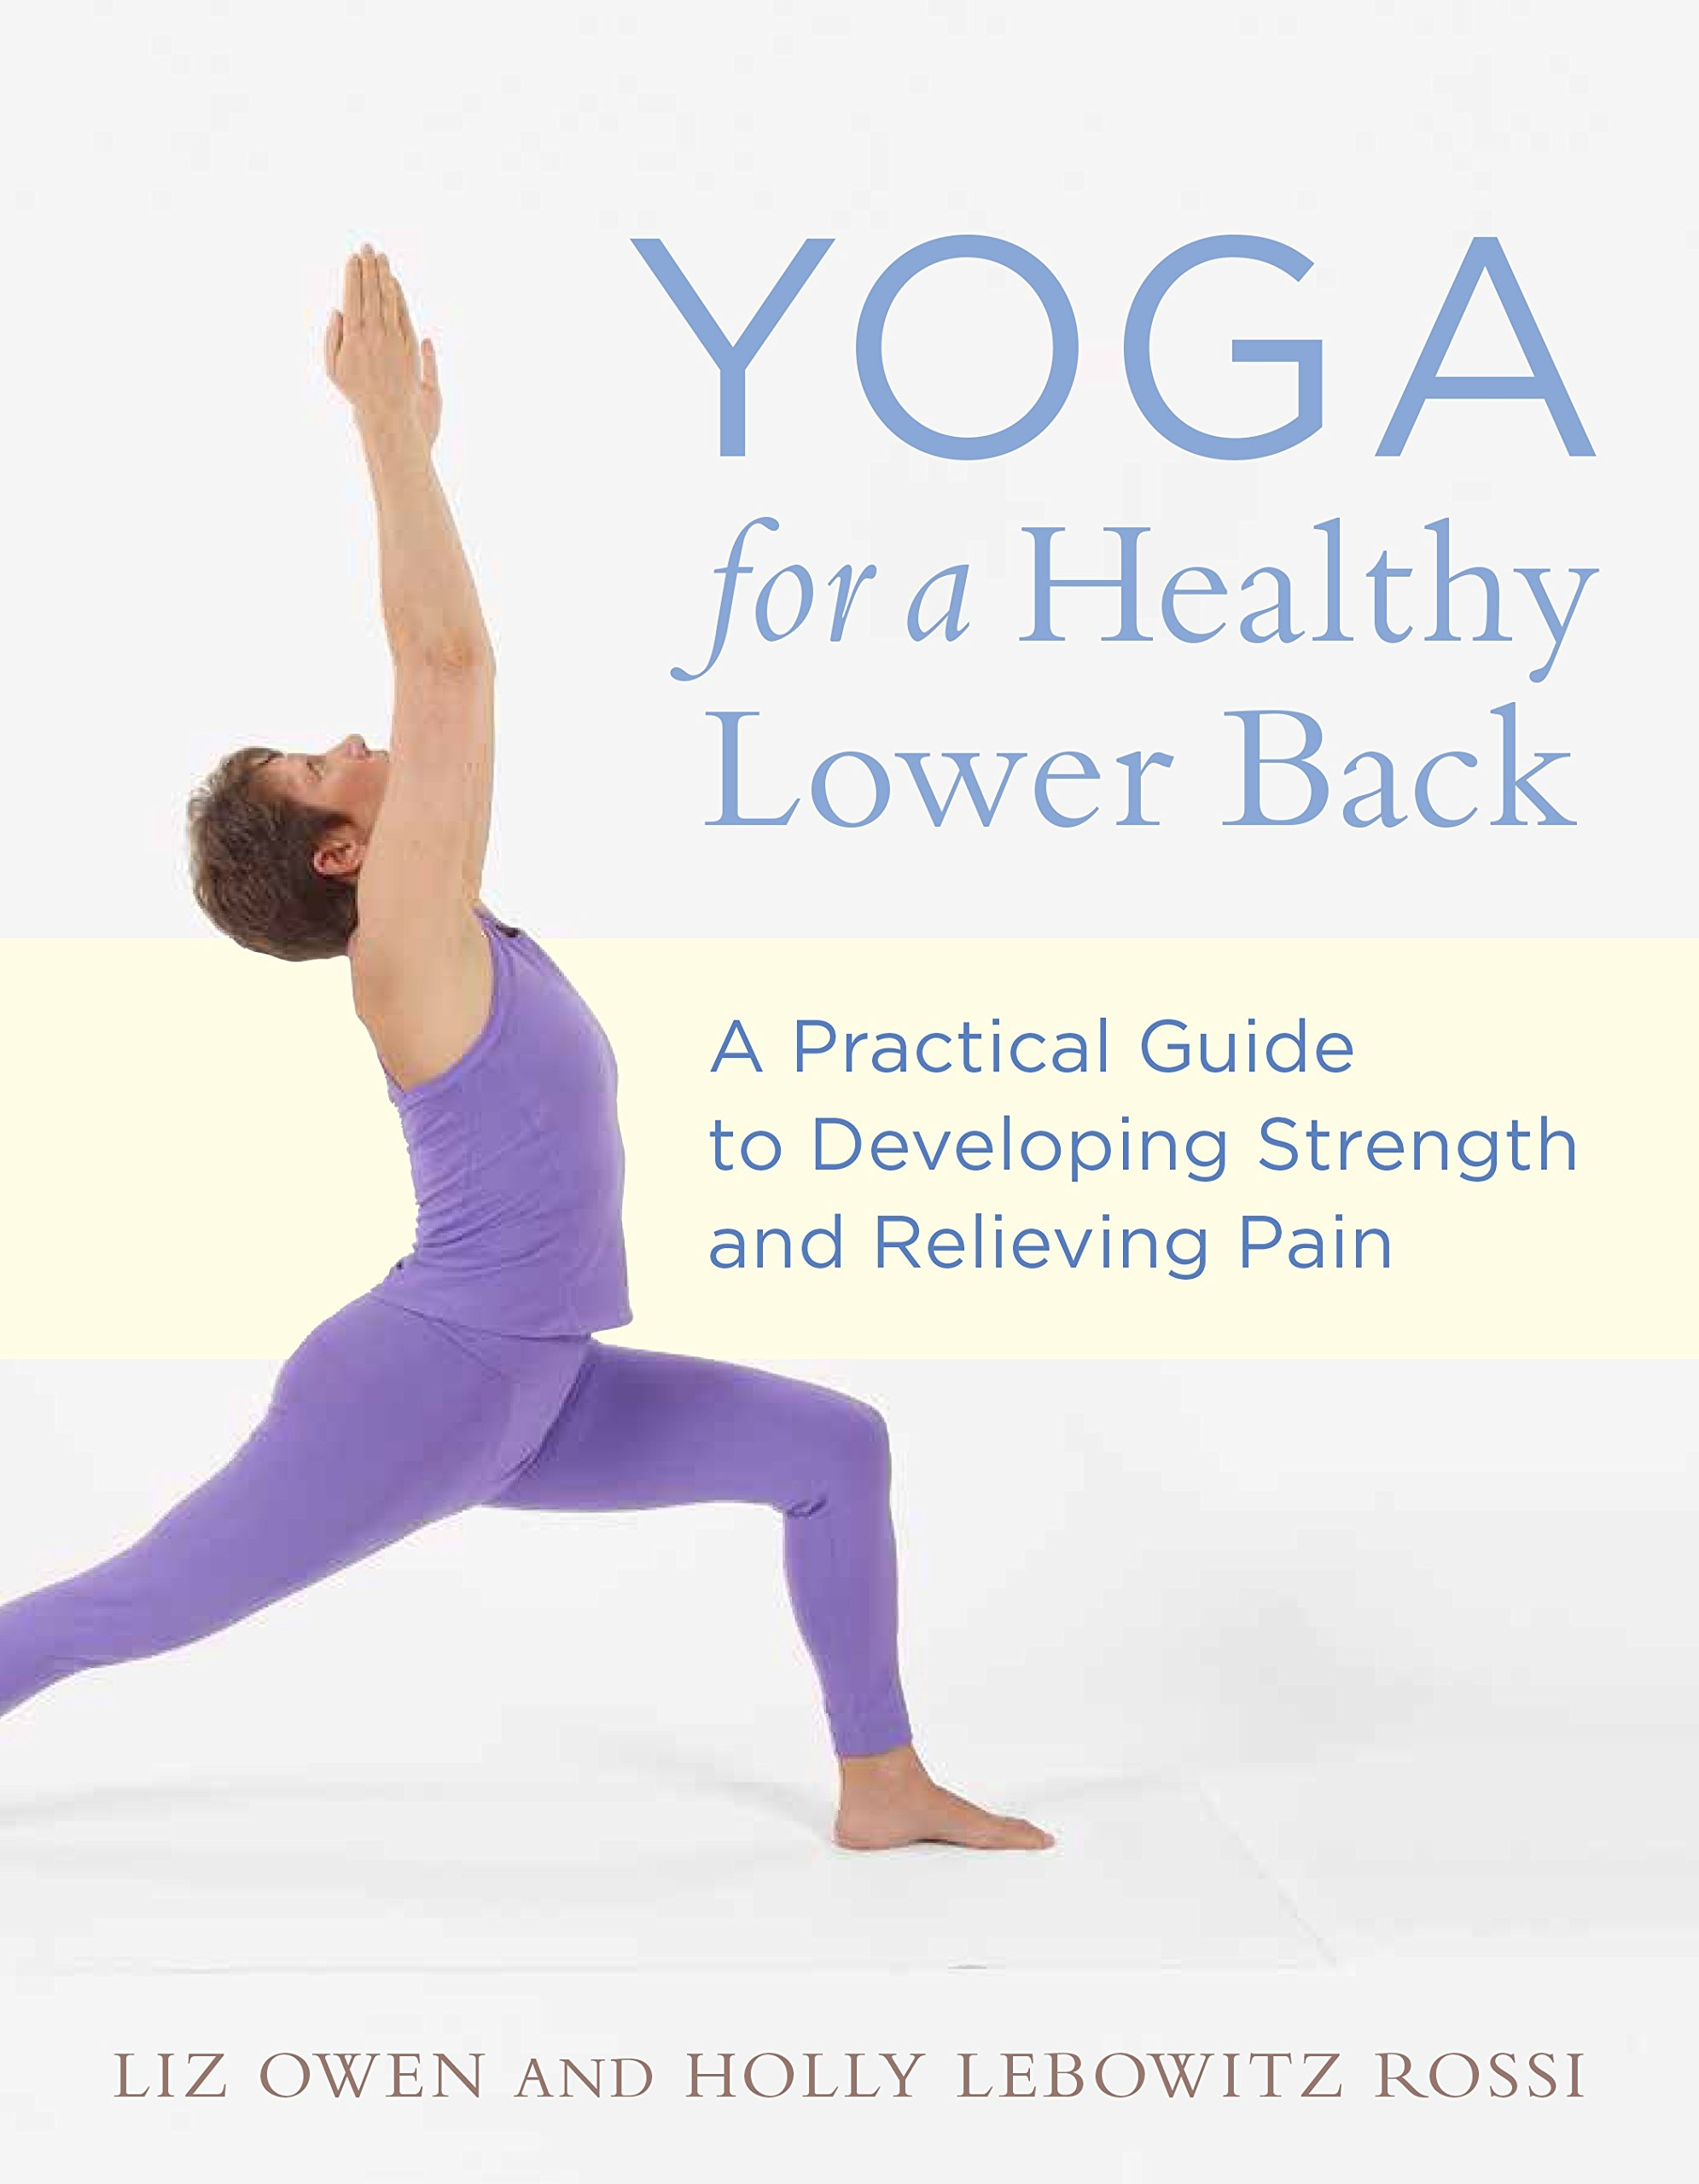 Yoga For A Healthy Lower Back A Practical Guide To Developing Strength And Relieving Pain Owen Liz Rossi Holly Lebowitz 9781611800494 Amazon Com Books